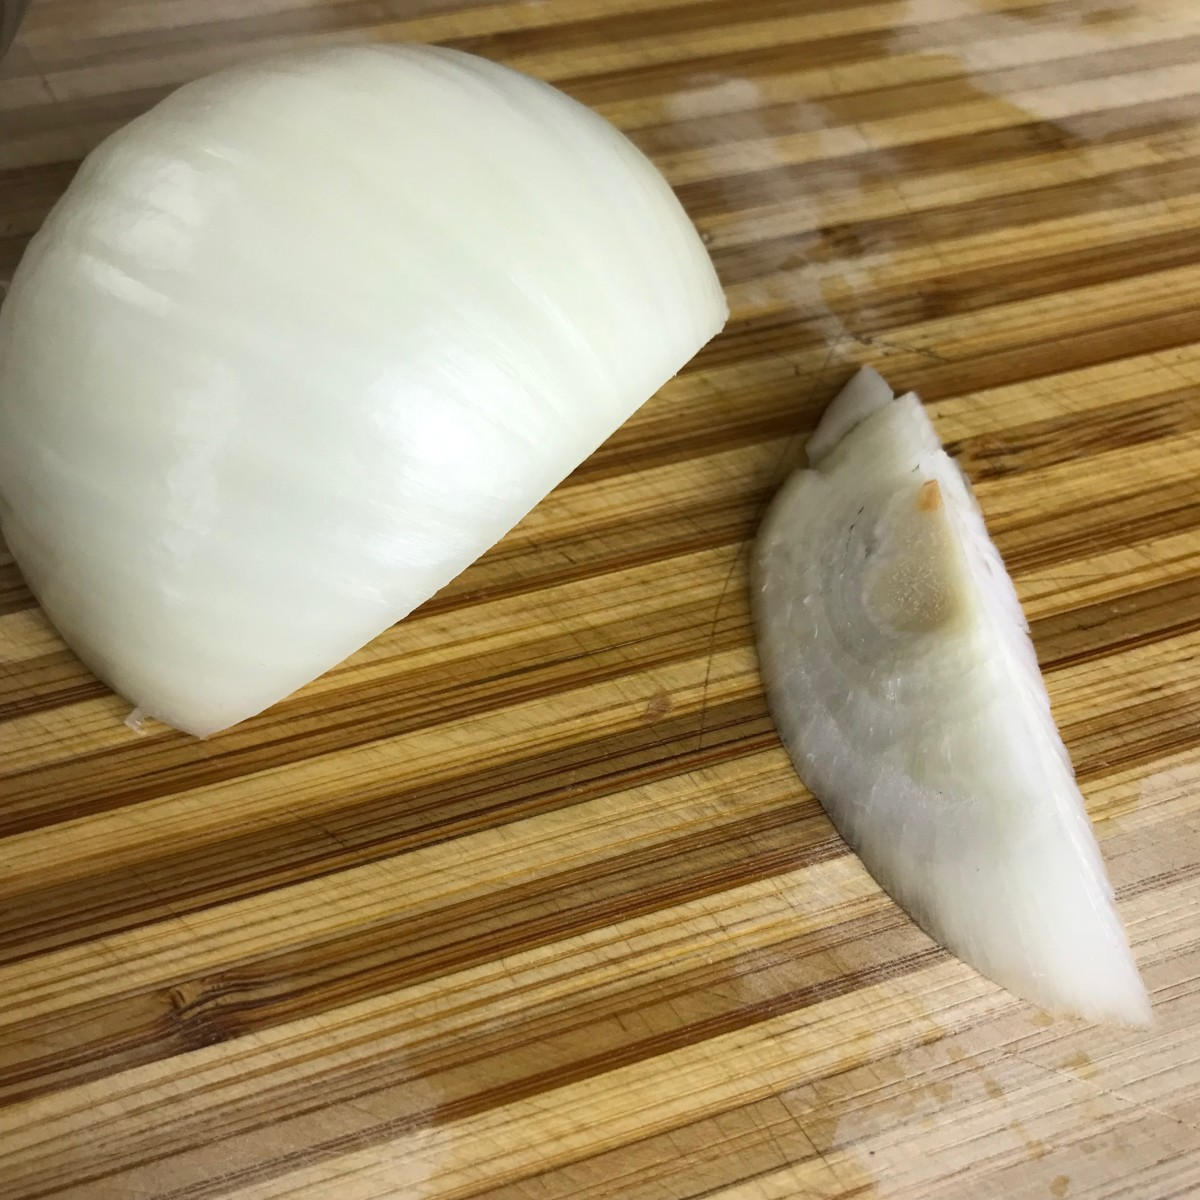 Trim the ends of the onions, split them in half, and remove the outer layer. If you have any root ends left on like the one in the photo, be sure to trim them out at a diagonal. If they are left intact, the onion layers will not separate properly.